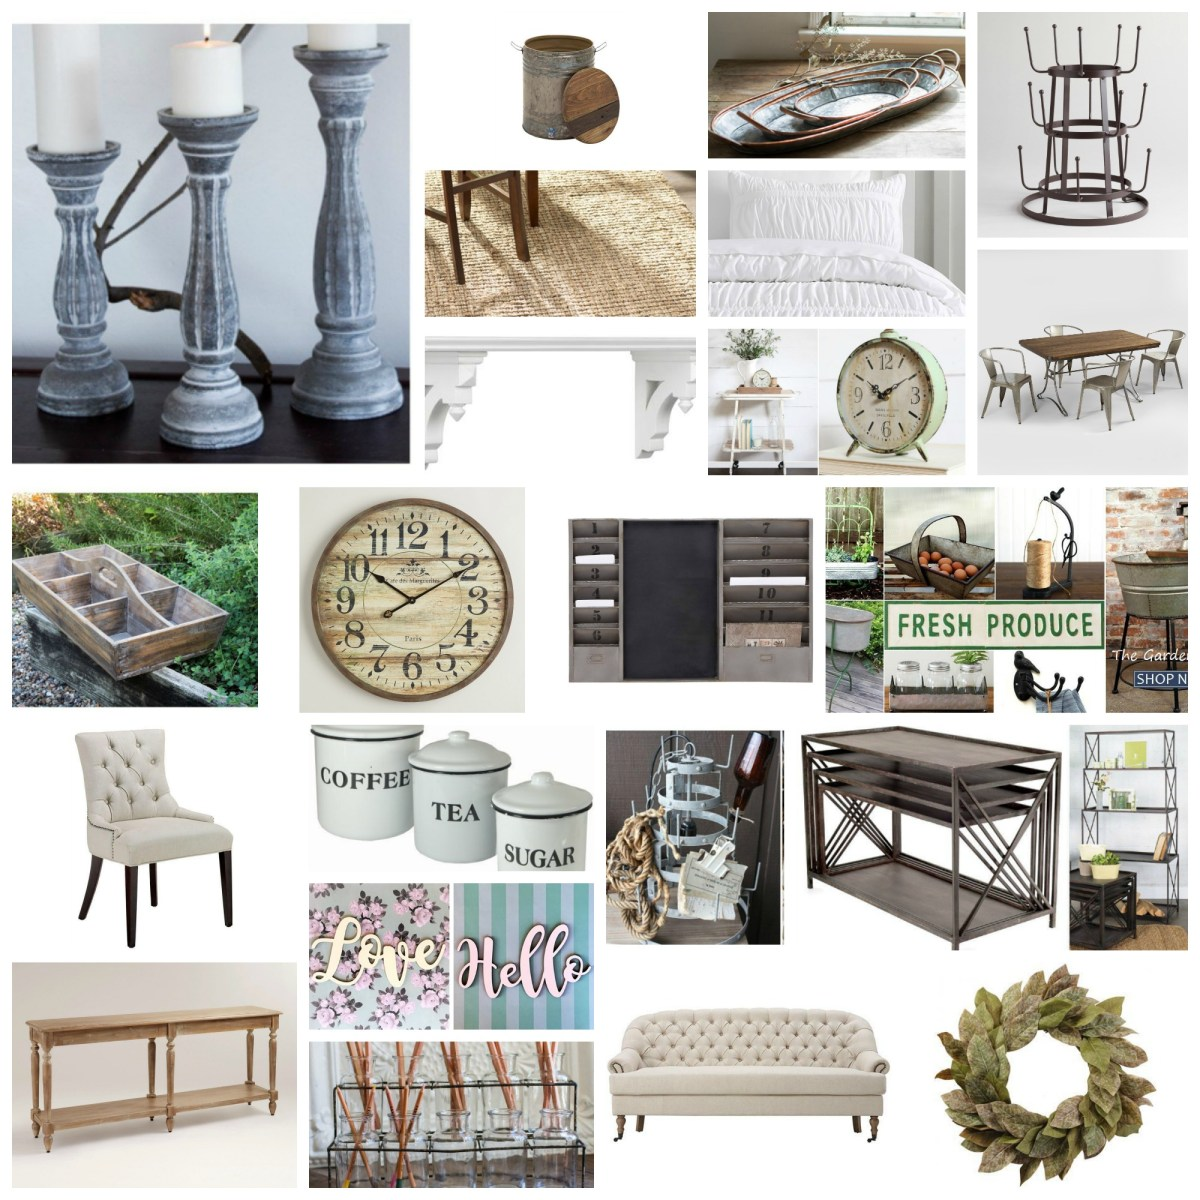 Home Decor Daily Deals: Monday, March 13, 2017